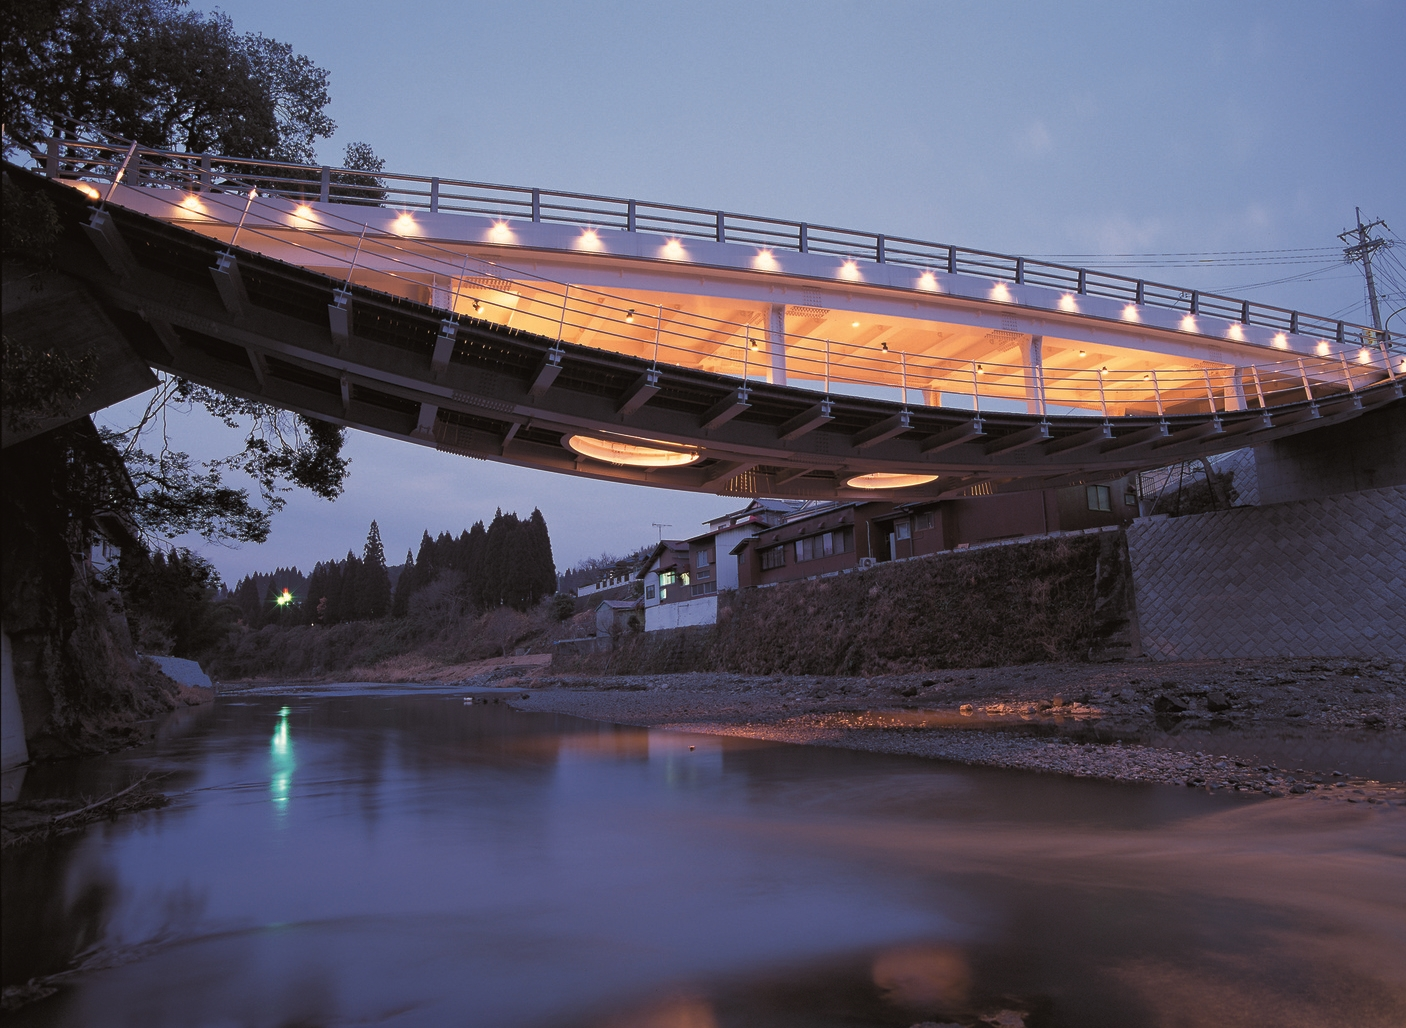 Mamihara Bridge